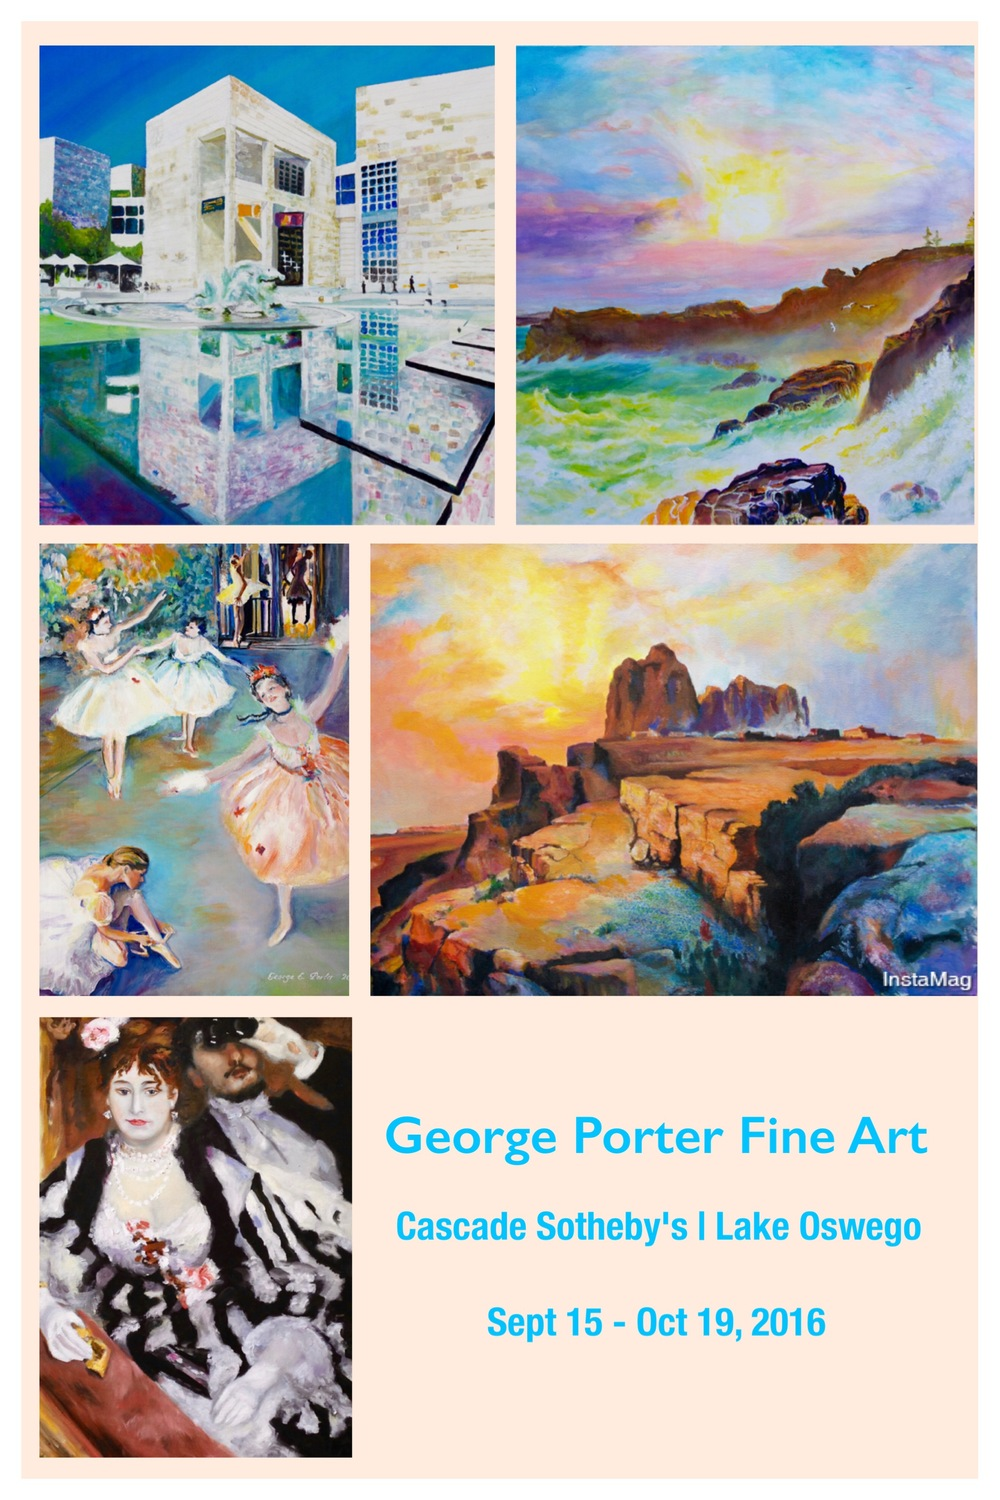 George Porter Fine Art at Cascade Sotheby's in Lake Oswego Sept 15 - Oct 19, 2016